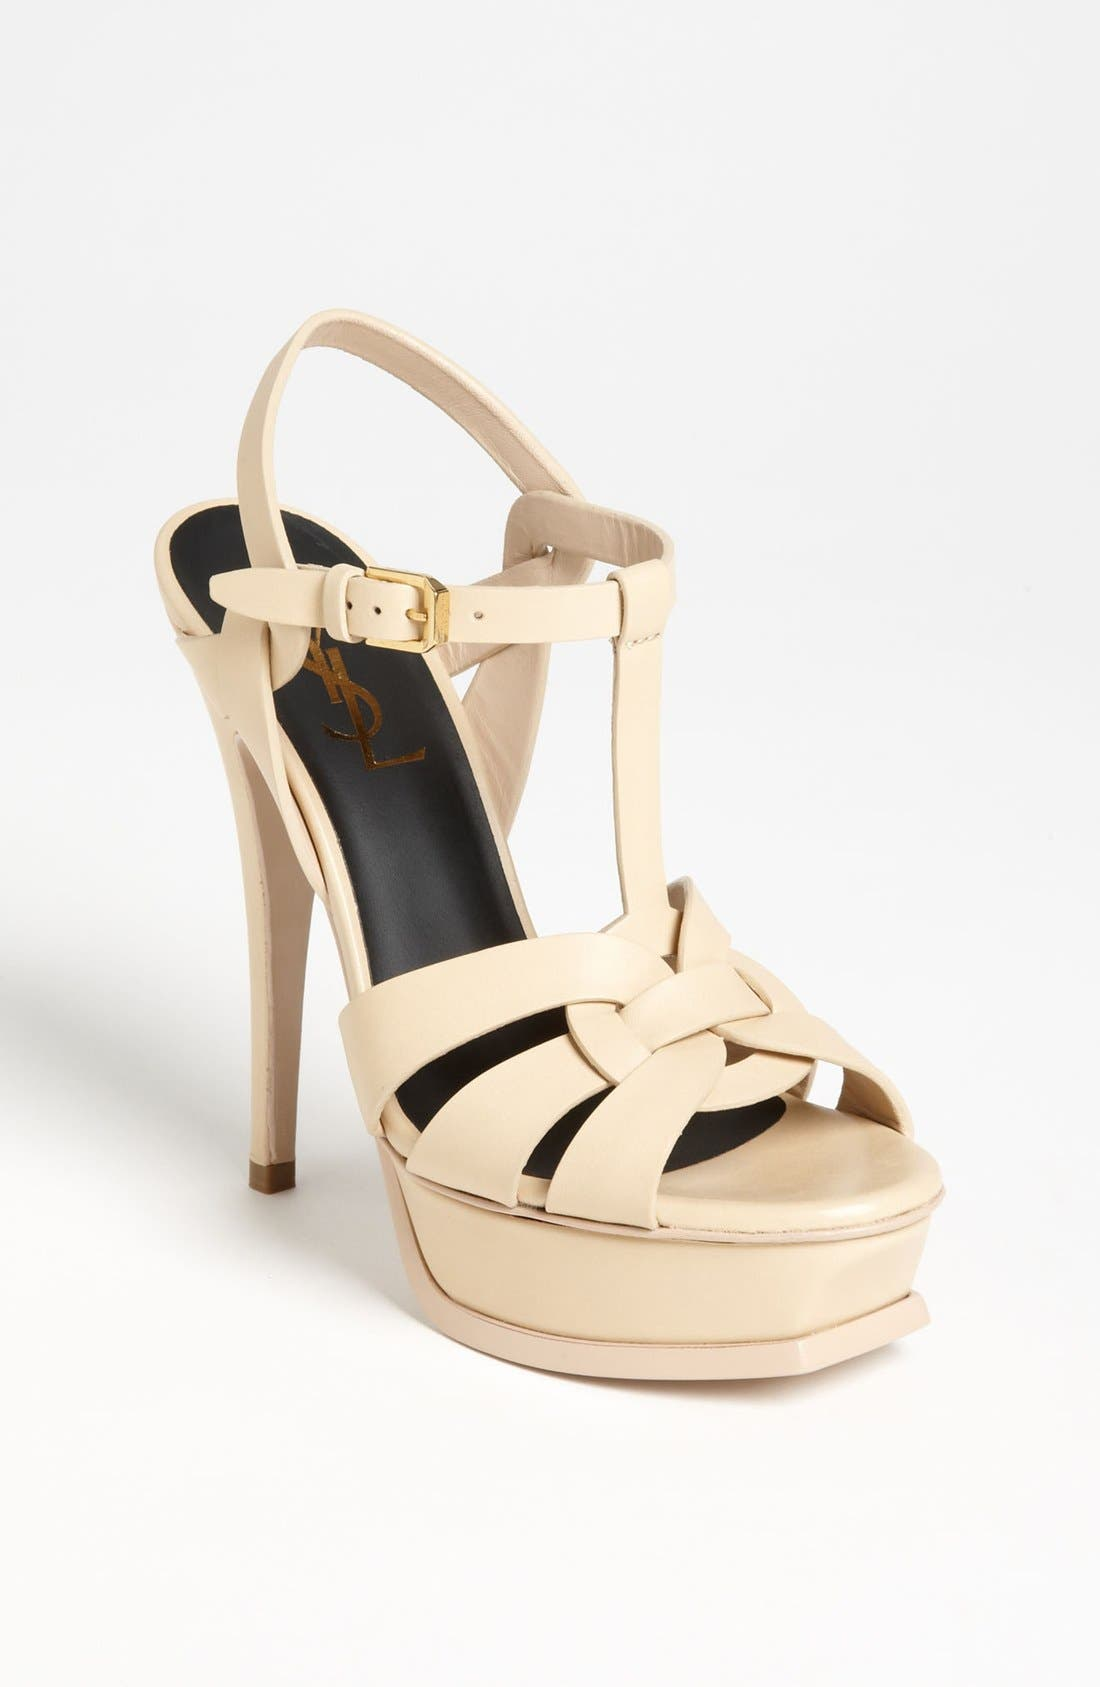 SAINT LAURENT Tribute Sandal